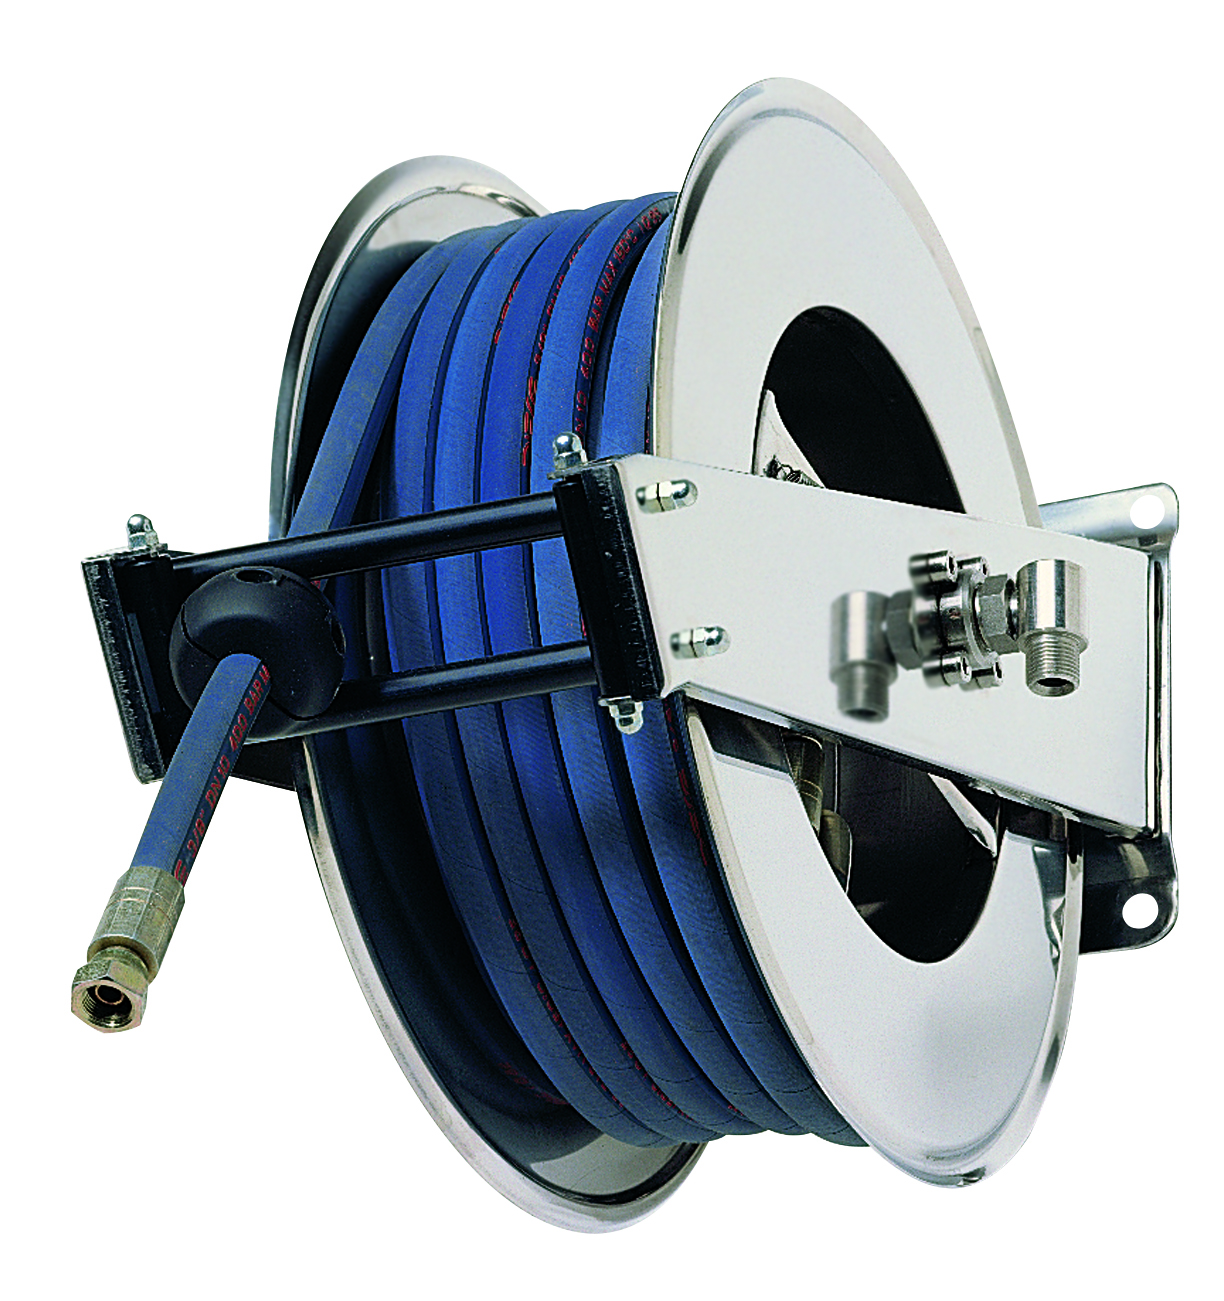 AV2000 400 - Hose reels for Water -  High Pressure up to 400 BAR/5800 PSI